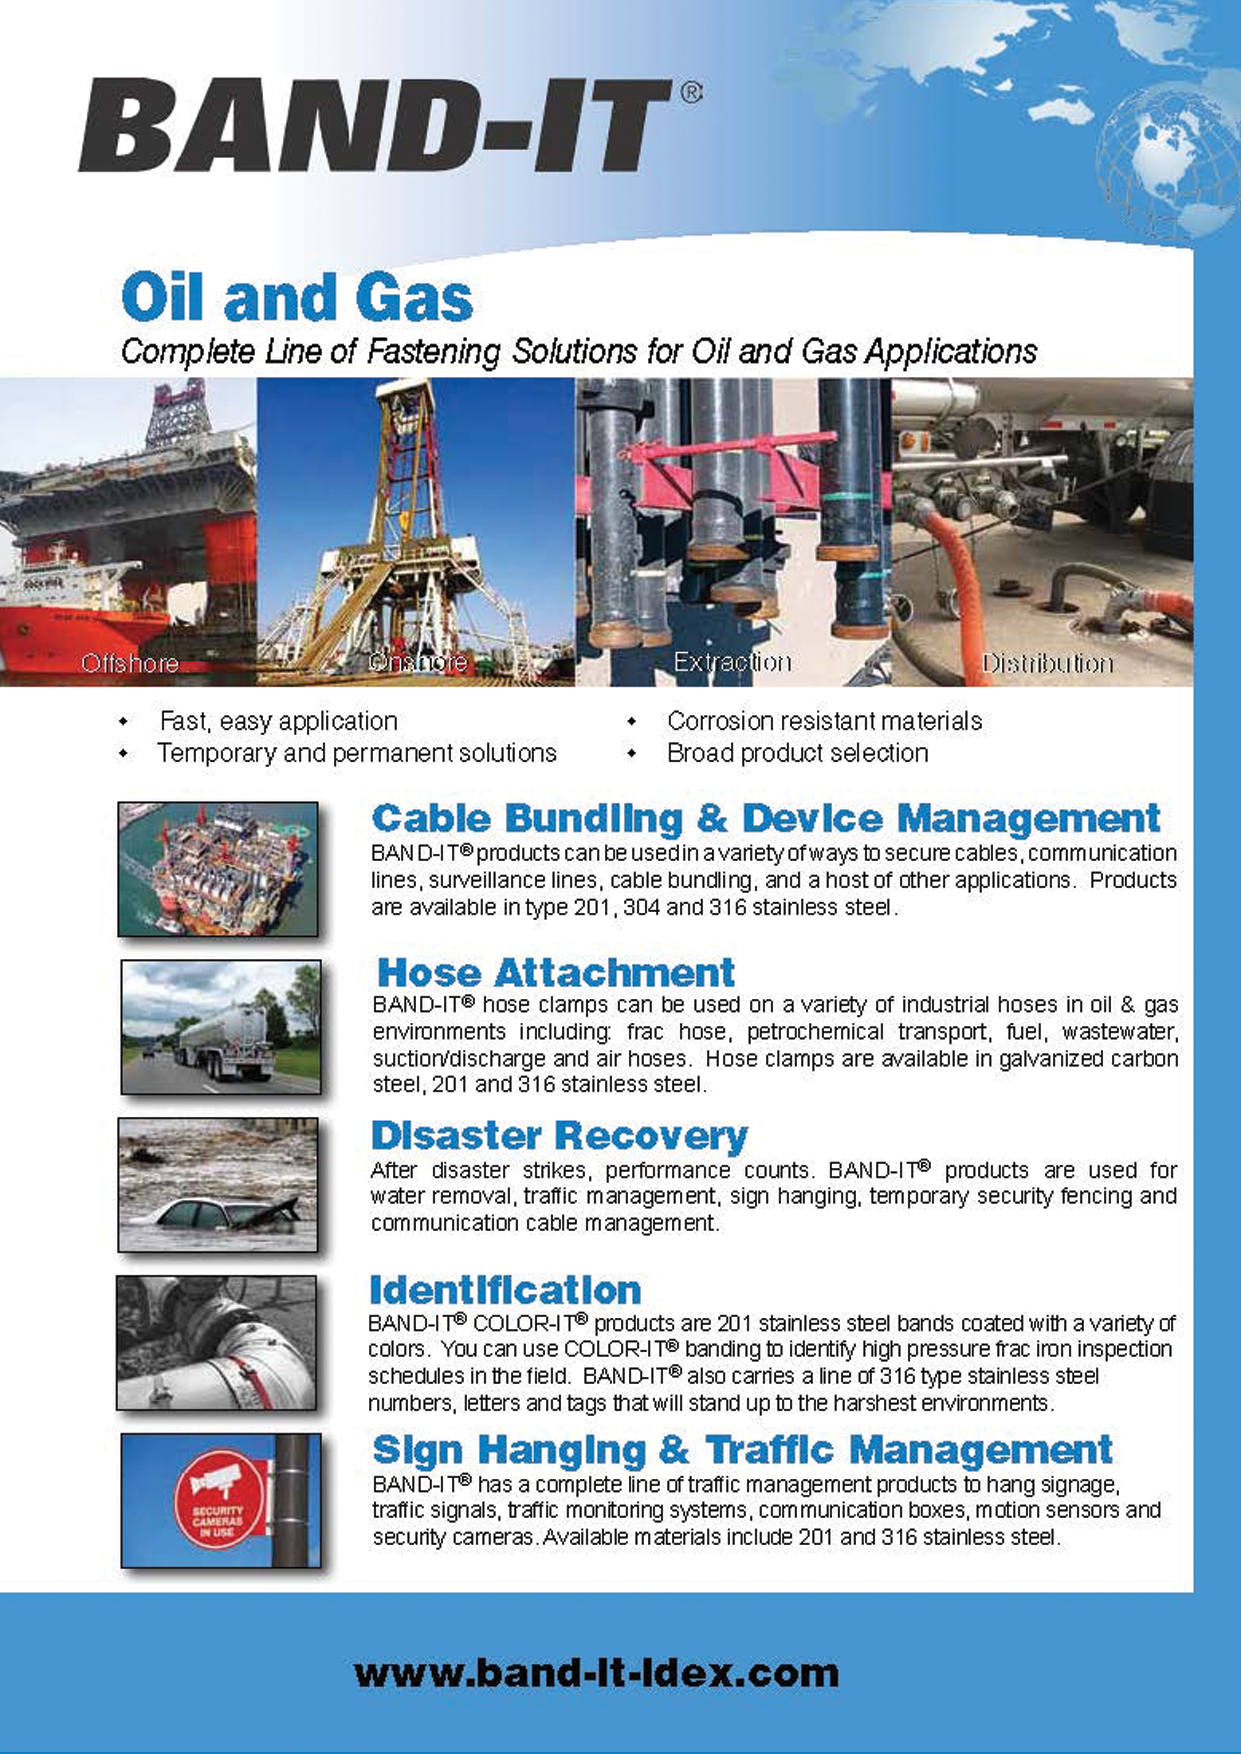 Oil and Gas Complete Line of Fastening Solutions for Oil and Applications